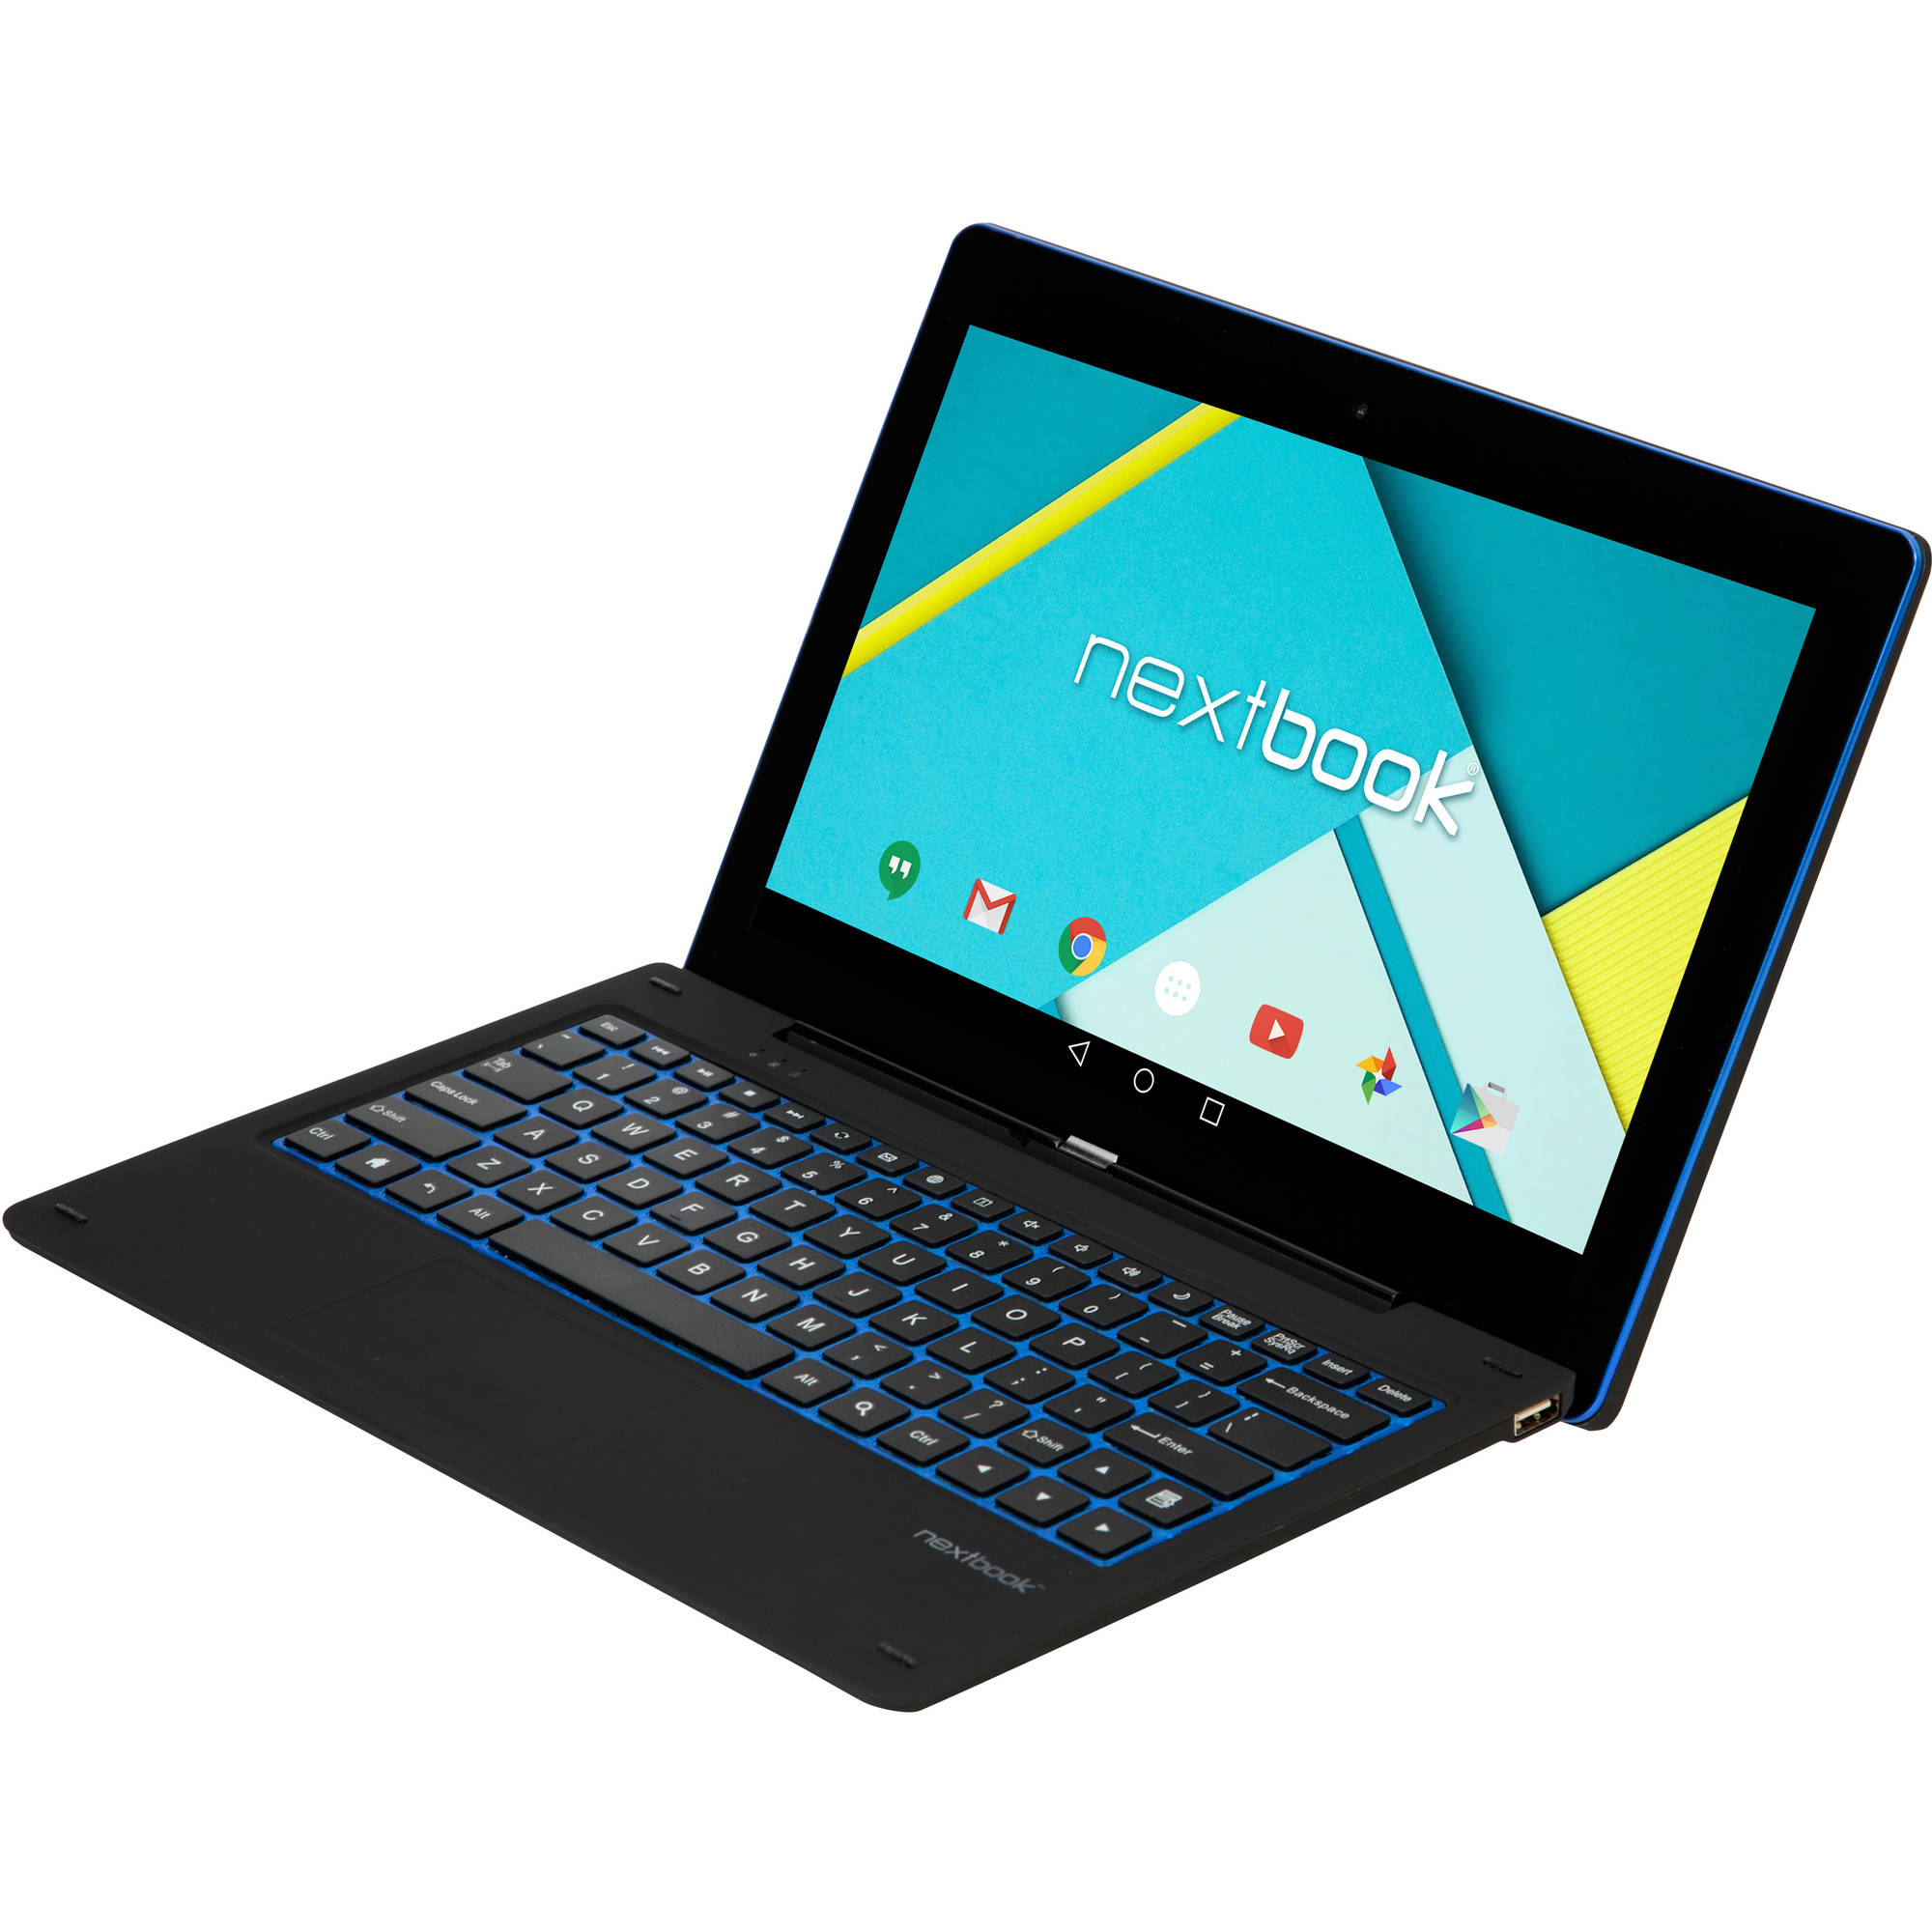 "Nextbook Ares 11 with WiFi 11.6"" Touchscreen Tablet PC Featuring Android 5.0 (Lollipop) Operating System, Black"